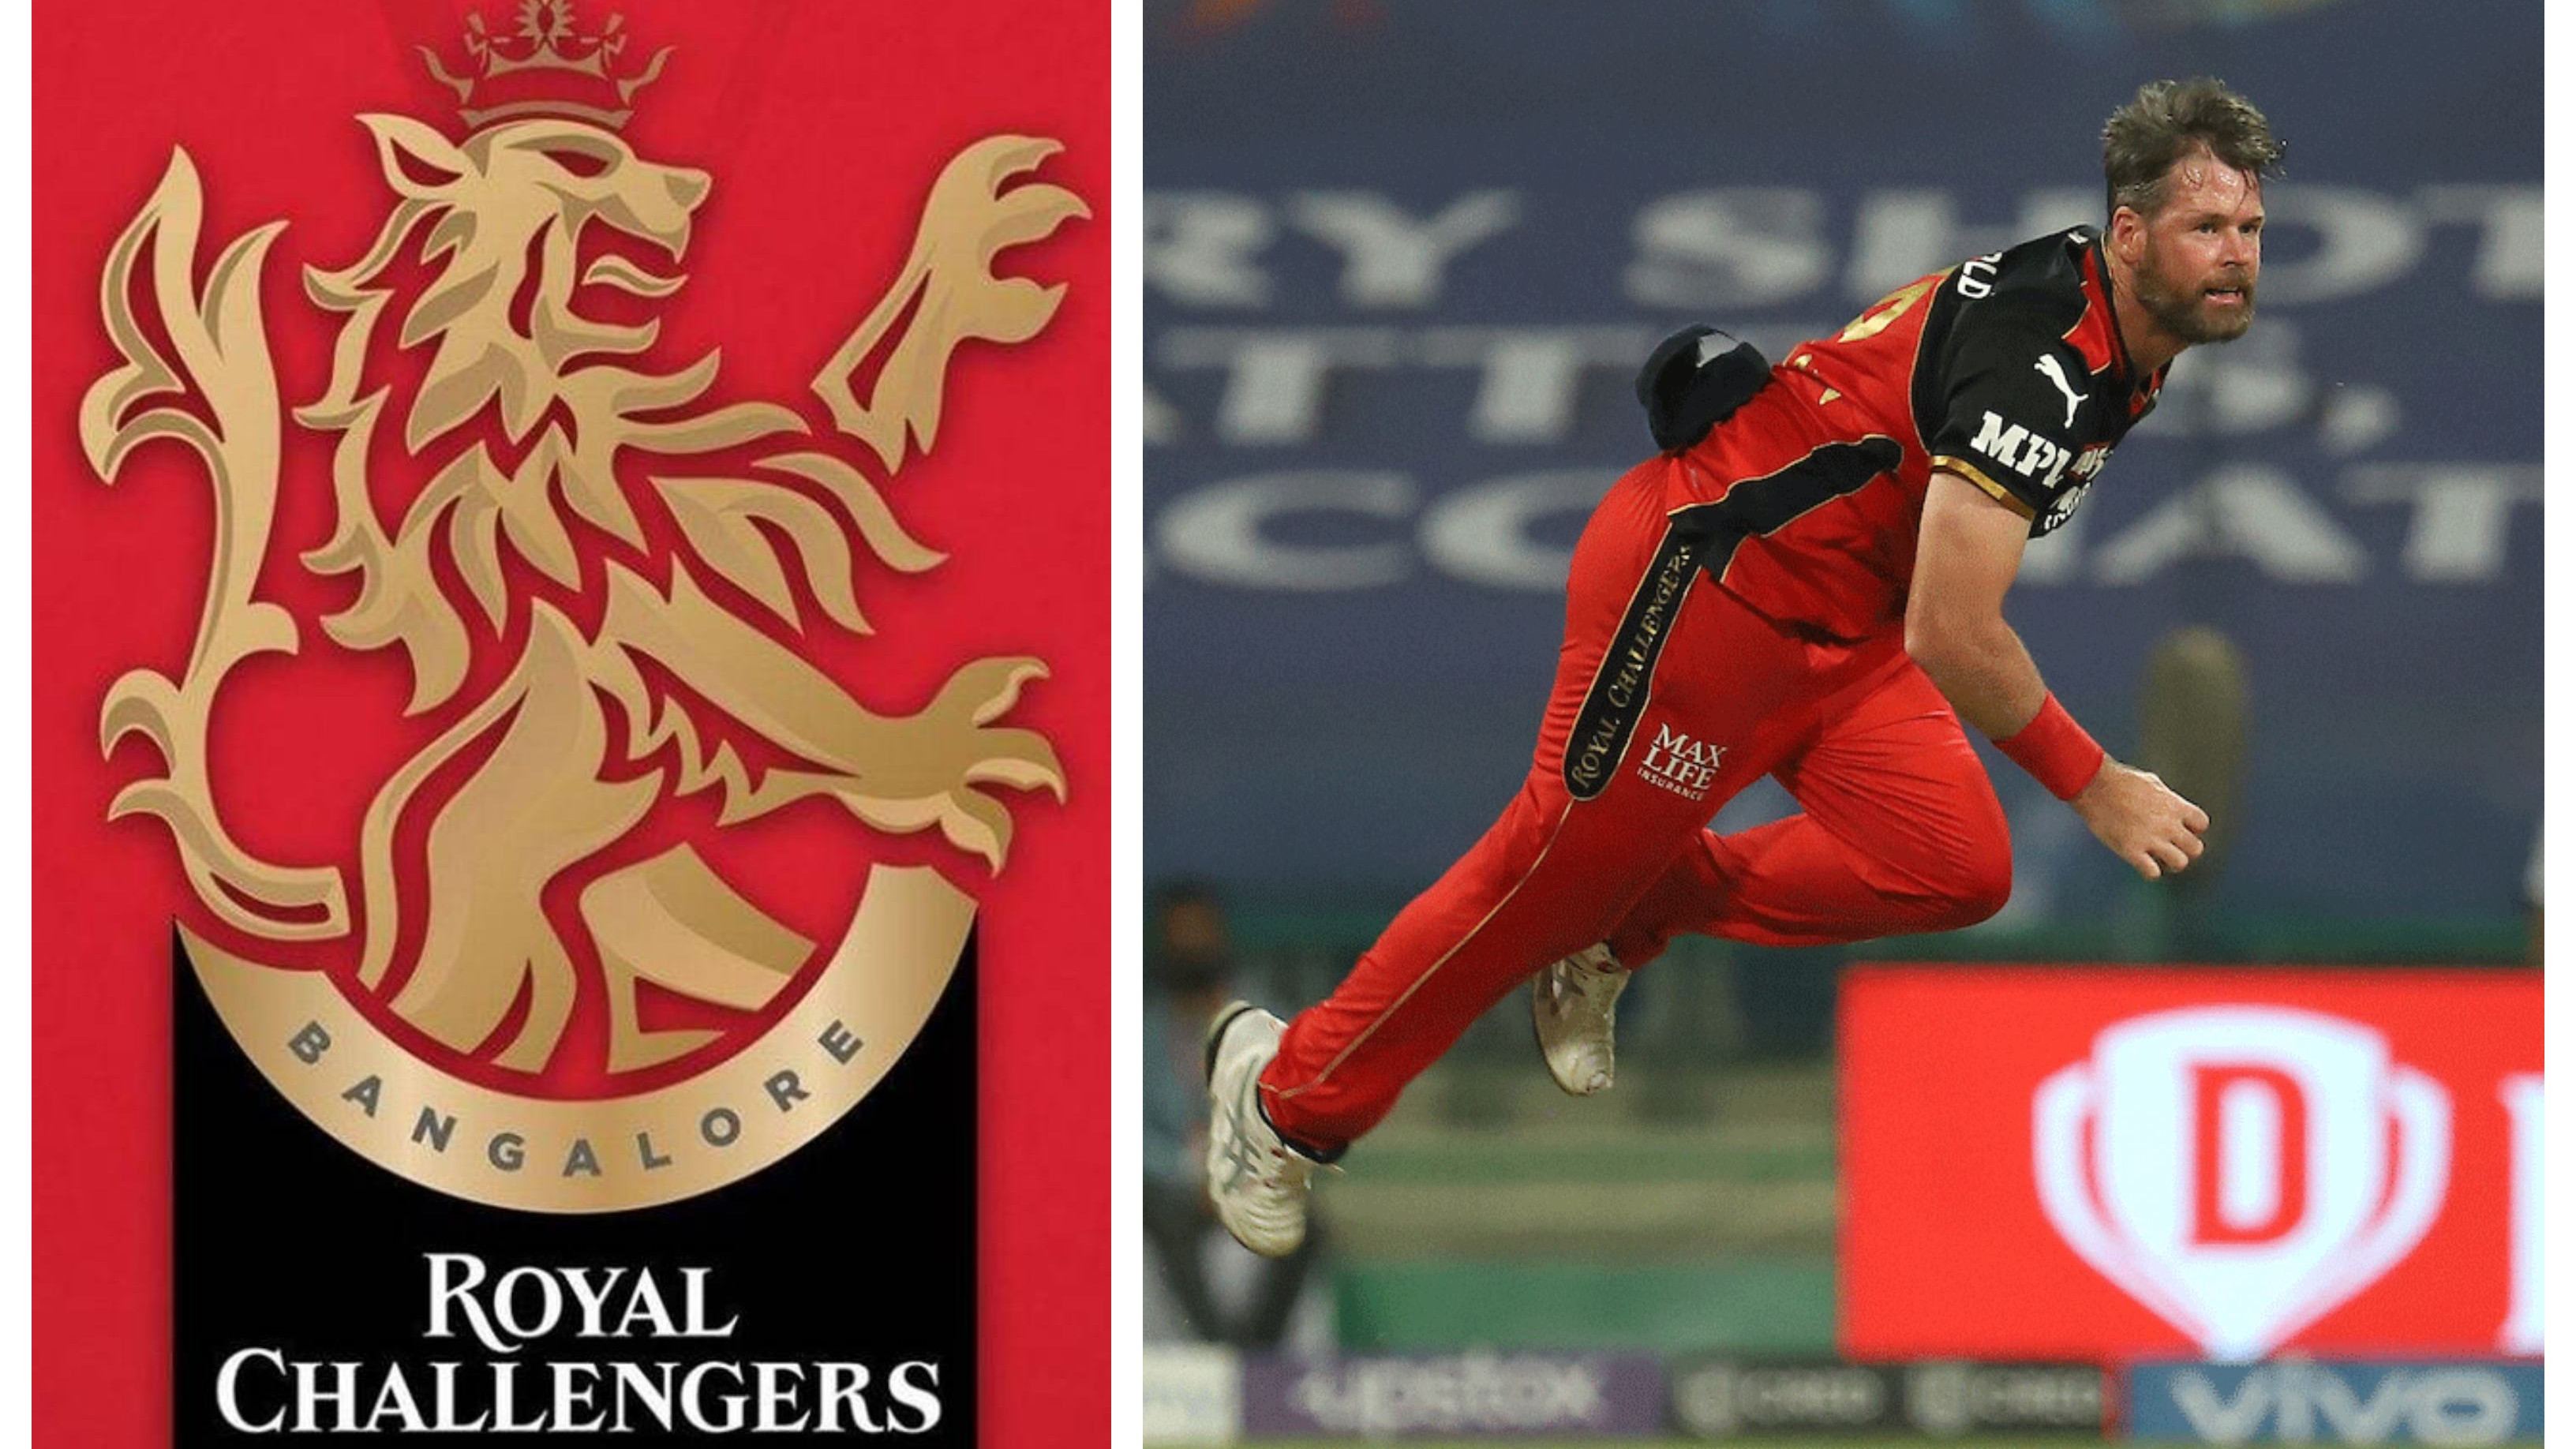 """""""We're 100% with you Dan Christian"""", RCB extend support after all-rounder faces horrific online abuse"""